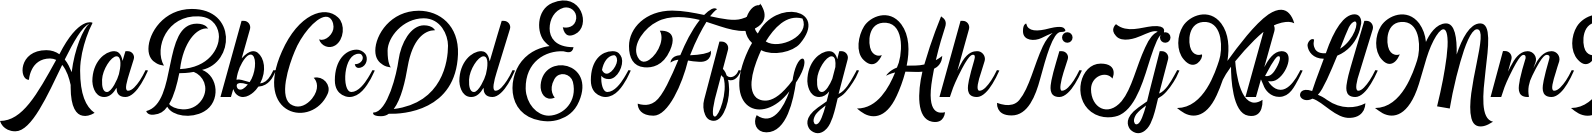 Hipsterious Regular Font